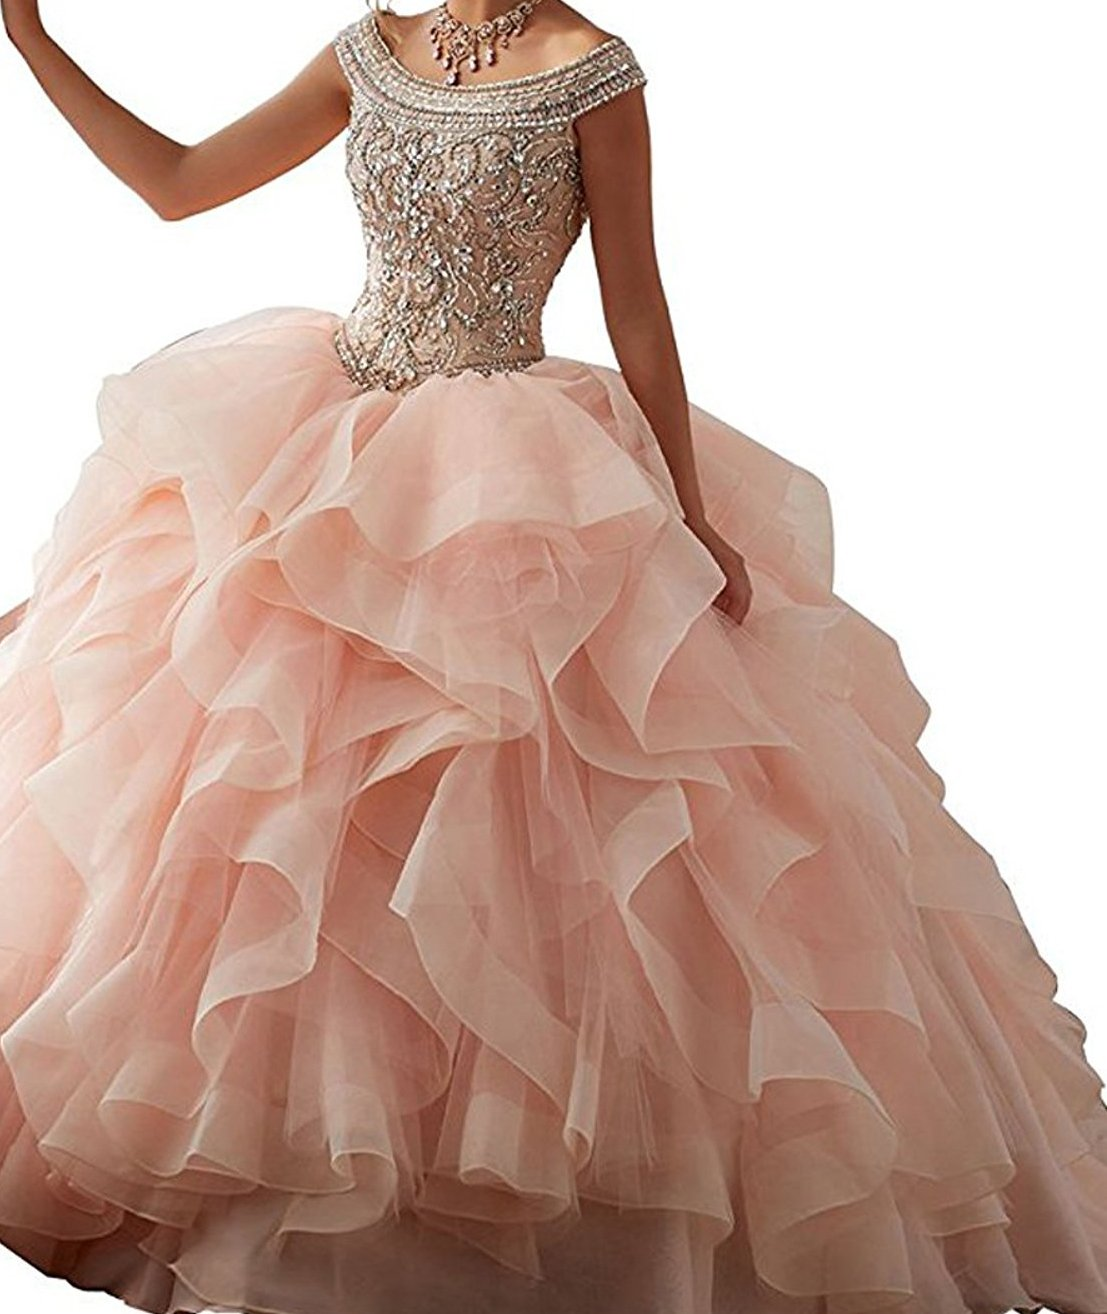 0cd487c42ae BessDress Off The Shoulder Sweet 16 Prom Dresses Beaded Ruffles Evening  Party Ball Gown BD282